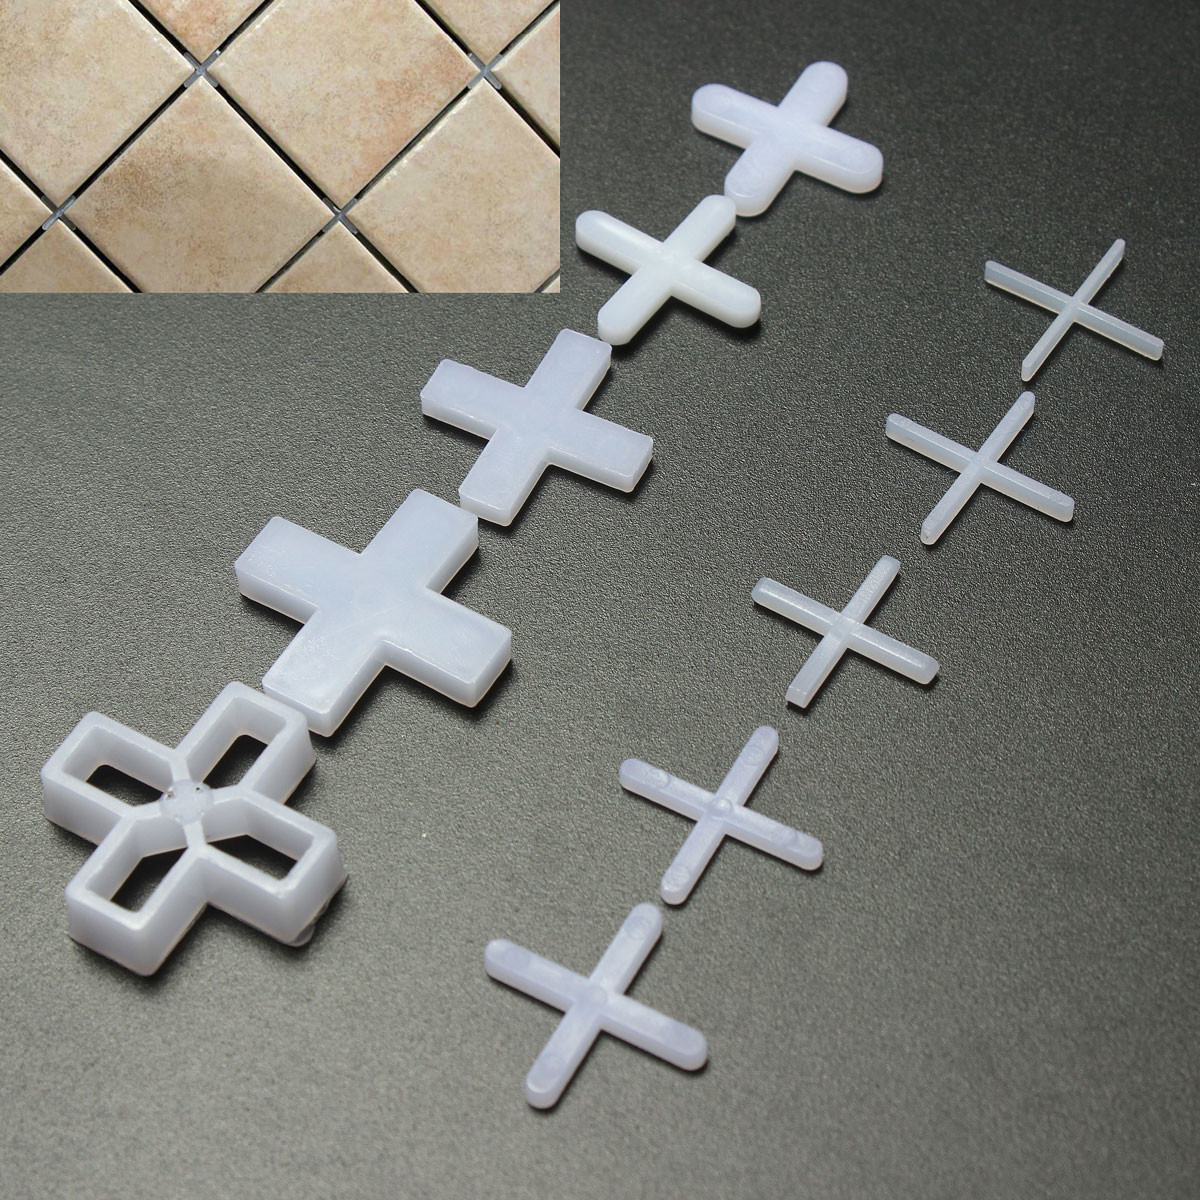 100x wall floor tile spacers cross 6mm tiling ceramic for 10mm floor tile spacers